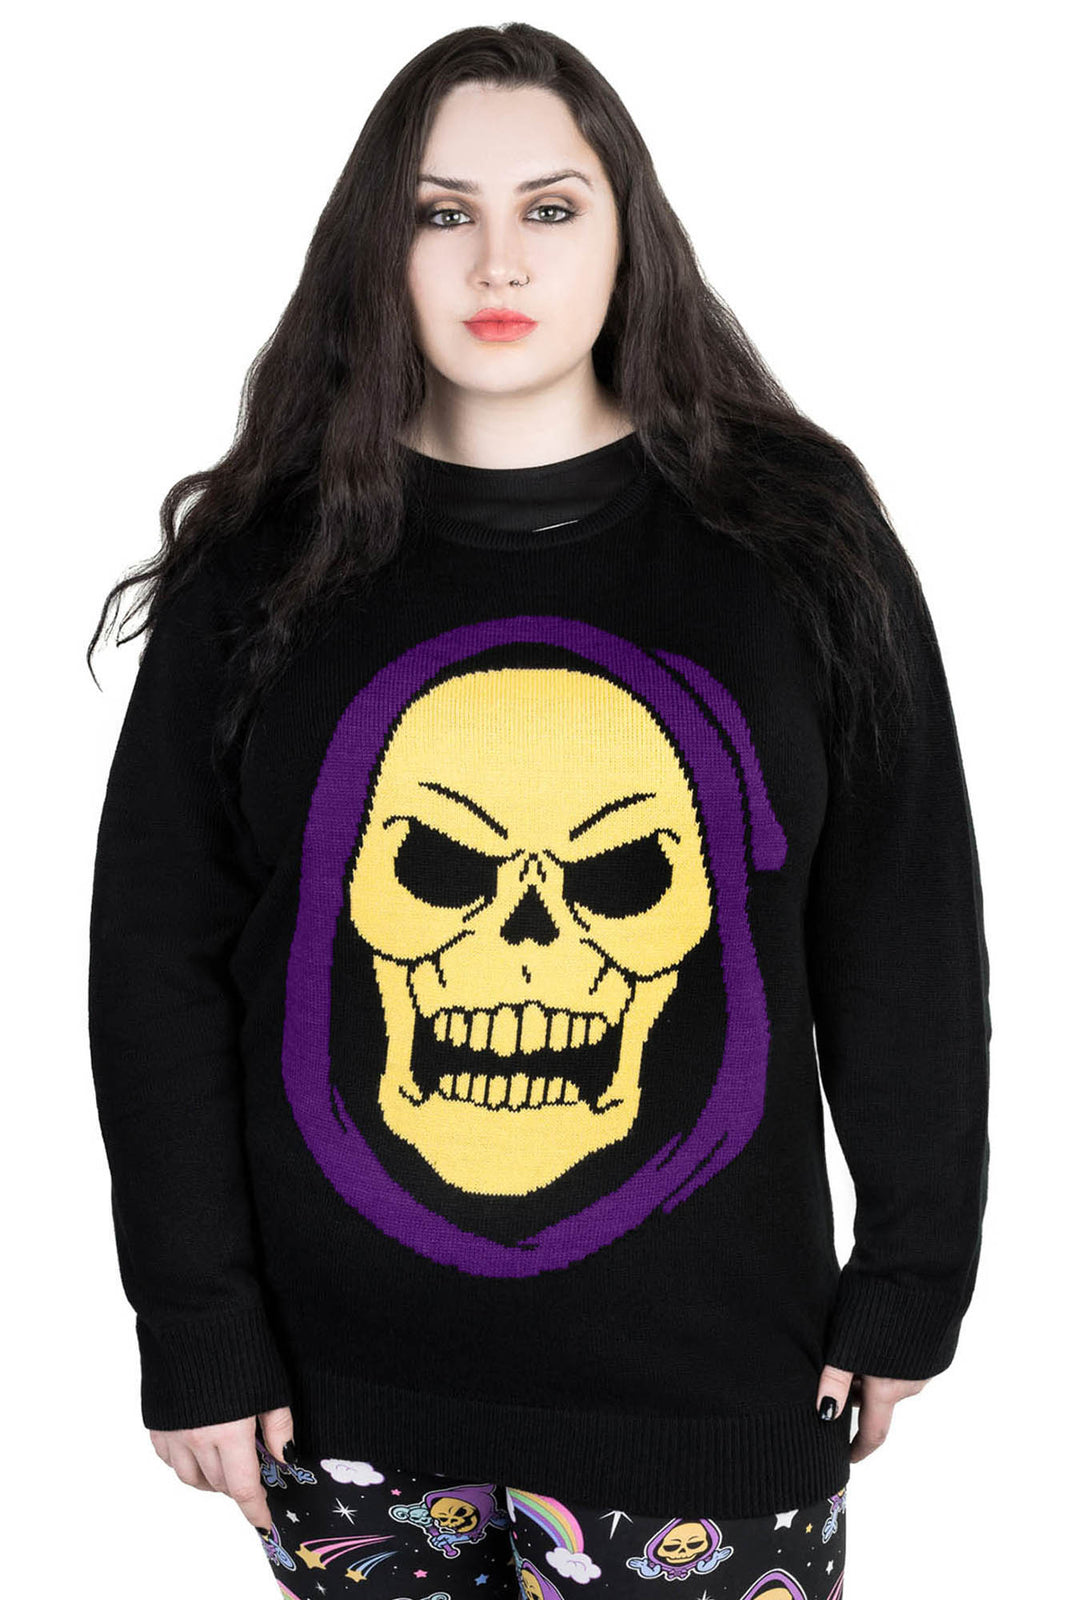 Skeletor Knit Sweater [PLUS]